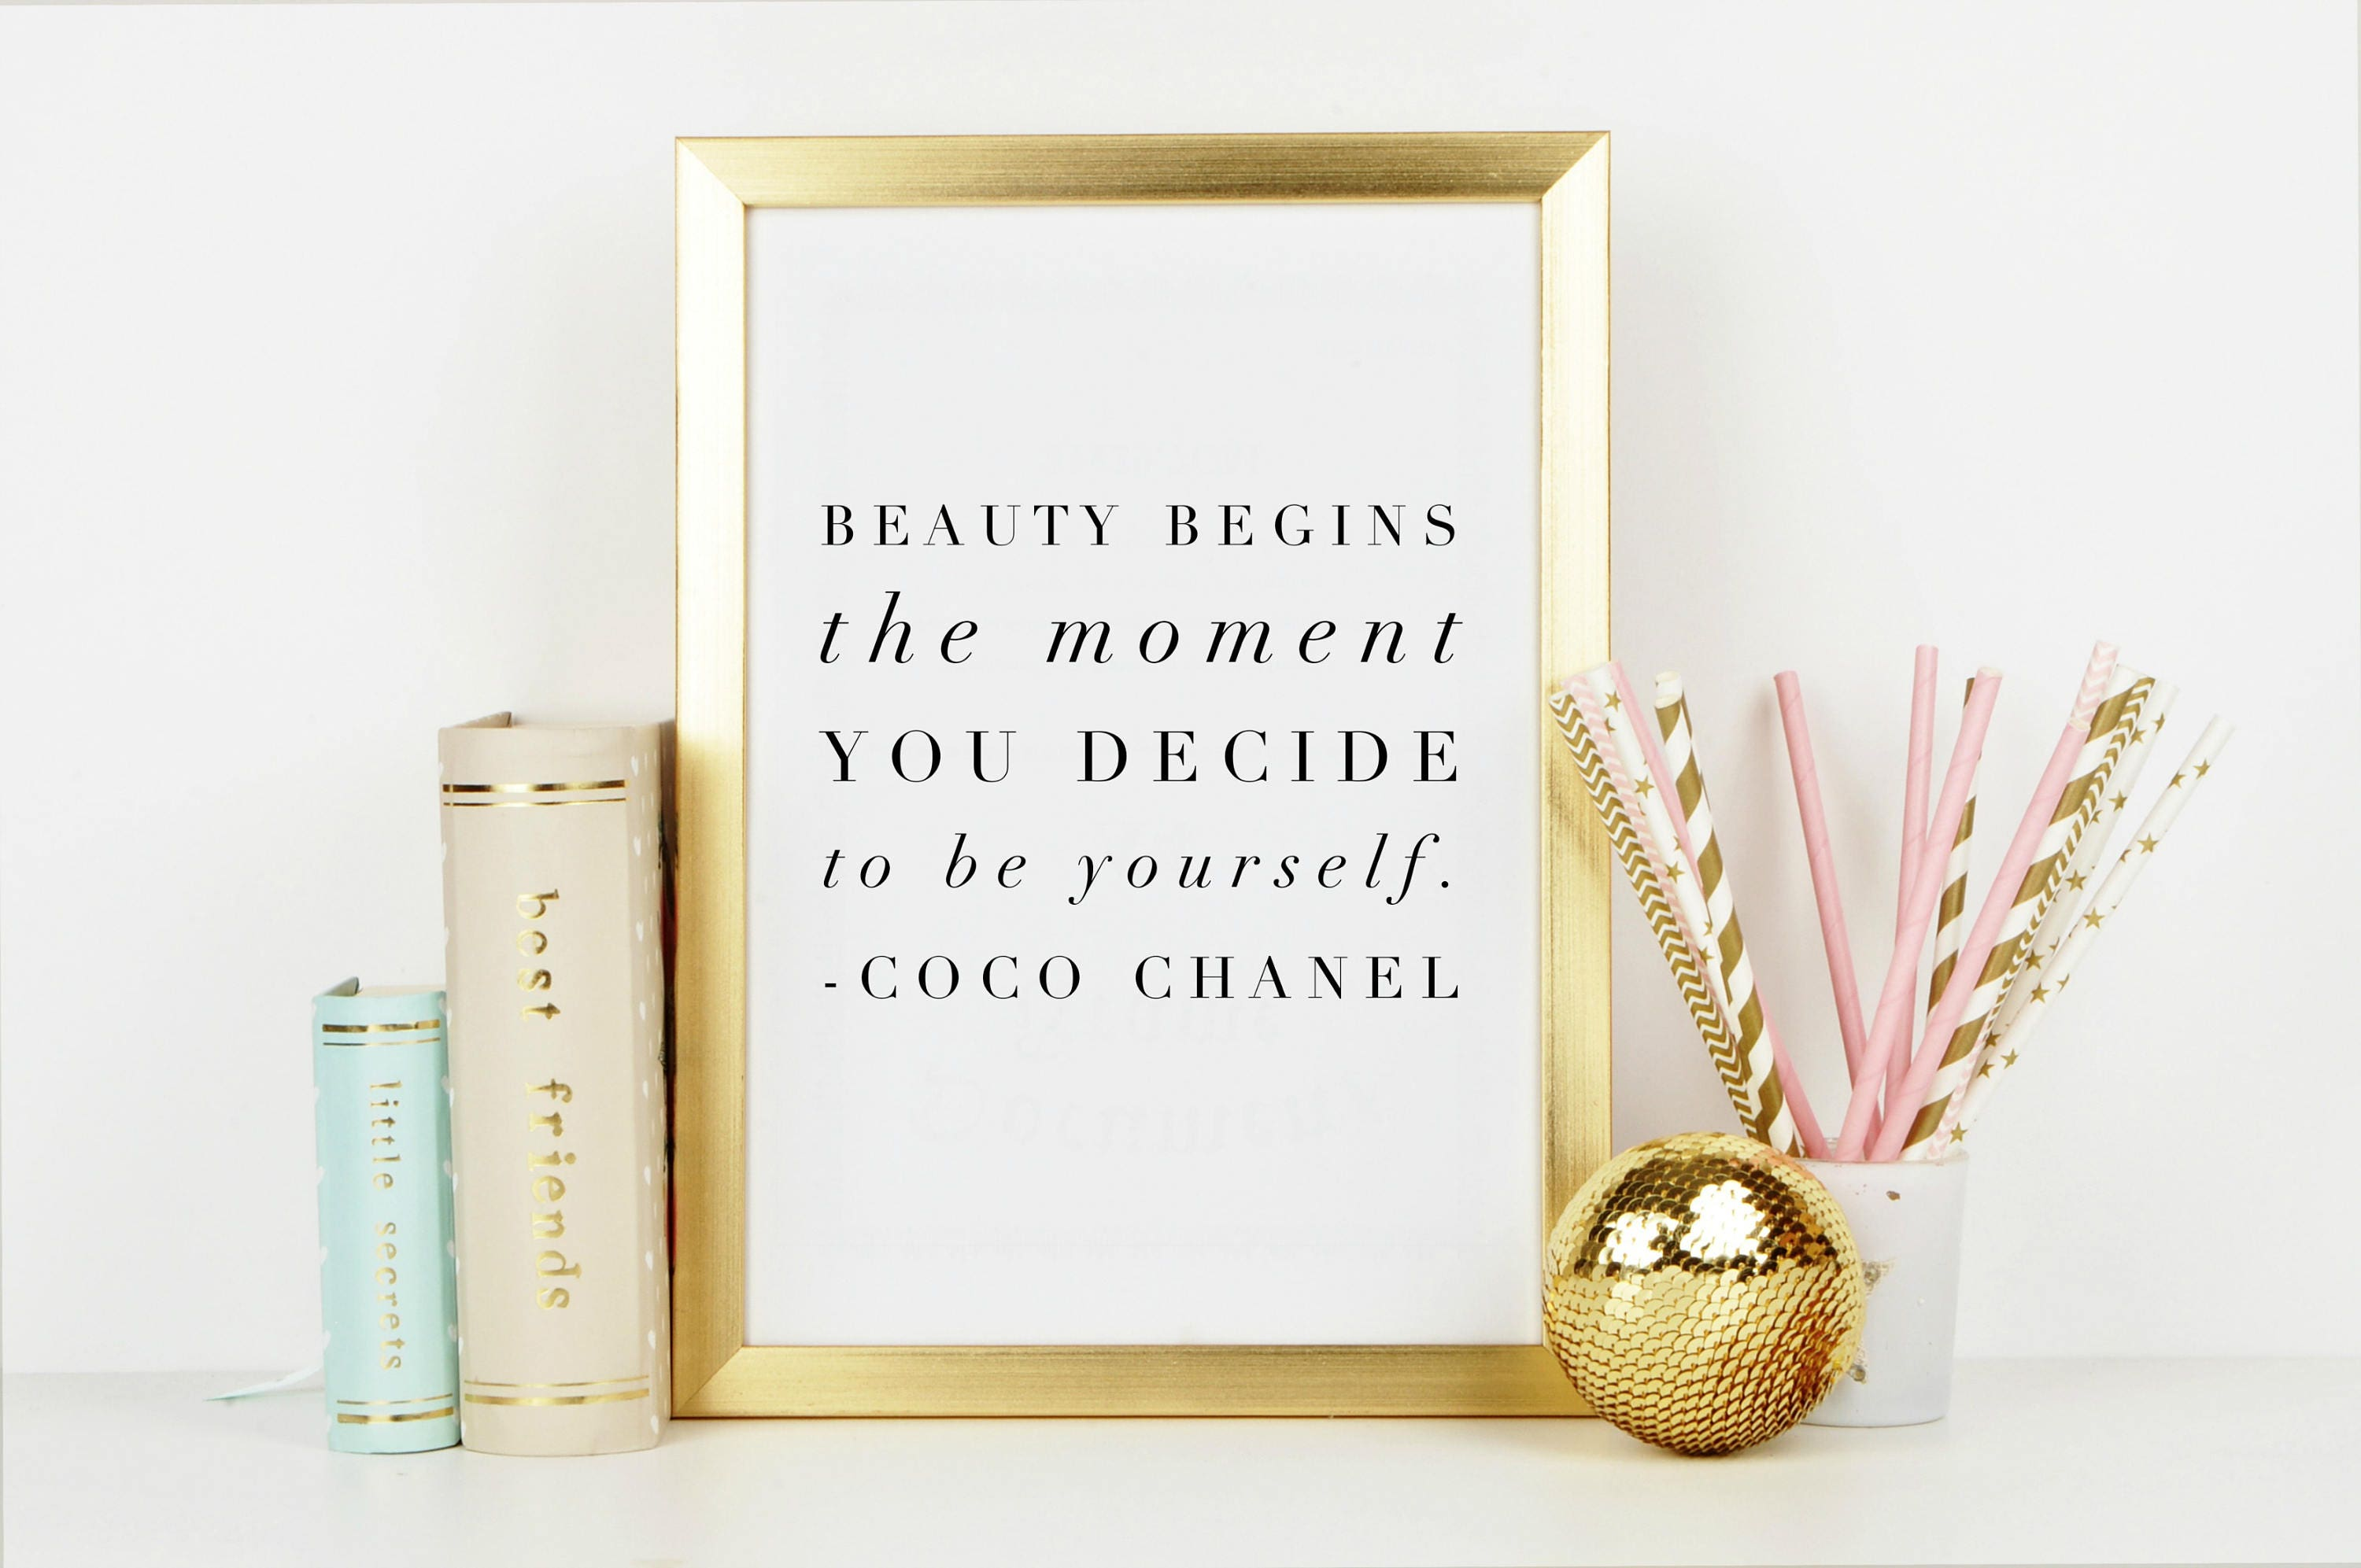 Beauty begins coco chanel quote minimalist high fashion wall gallery photo gallery photo gallery photo amipublicfo Gallery